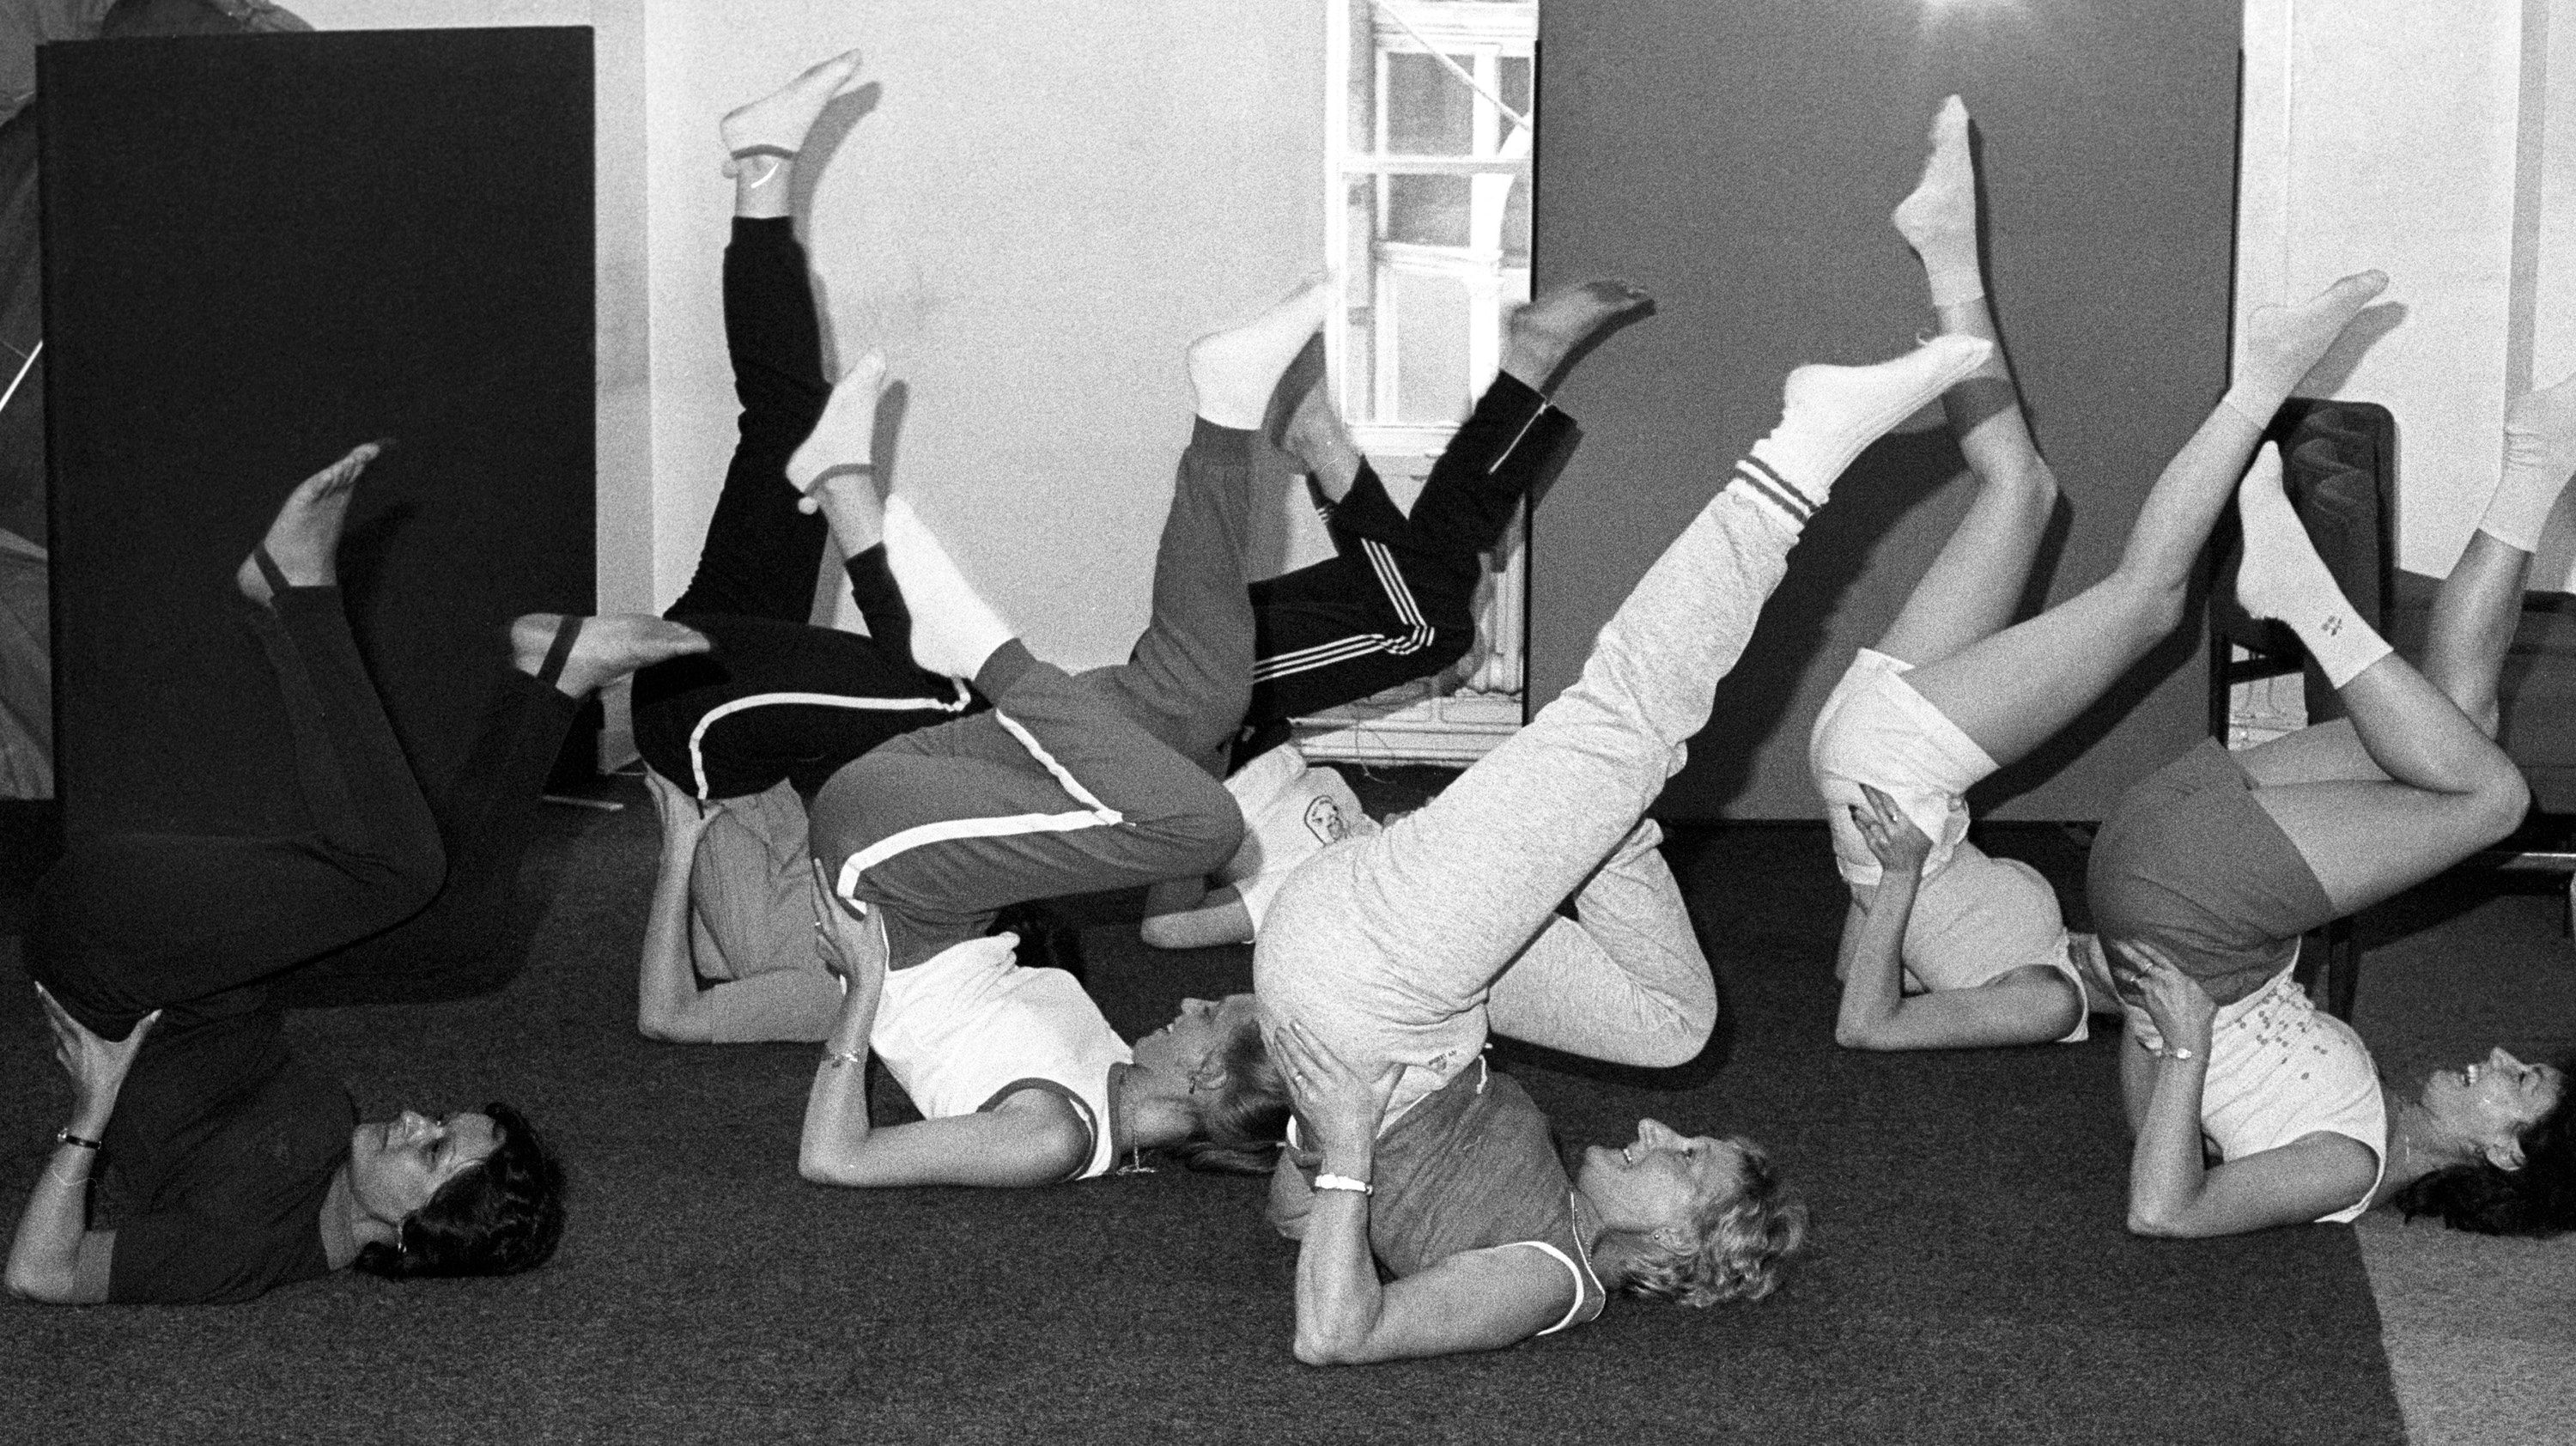 Think fitness is a new trend? These amazing photos of old gyms and workout classes prove otherwise